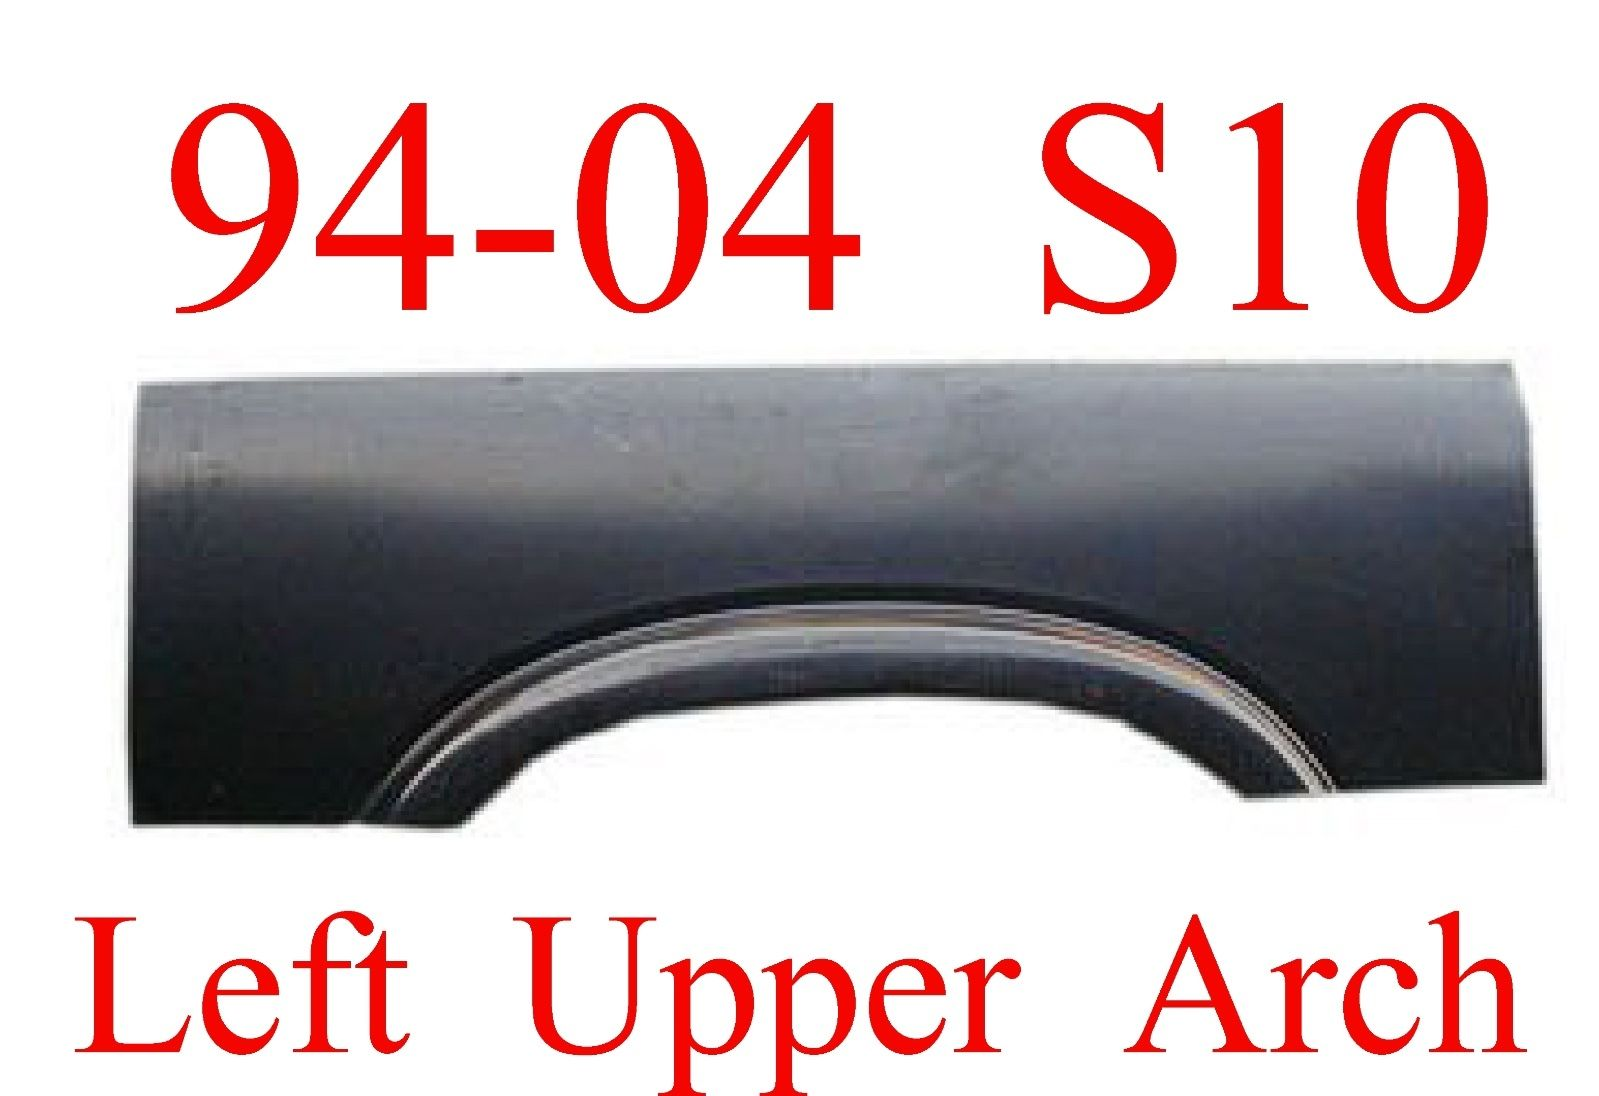 94-04 Chevy S10 Left Upper Arch